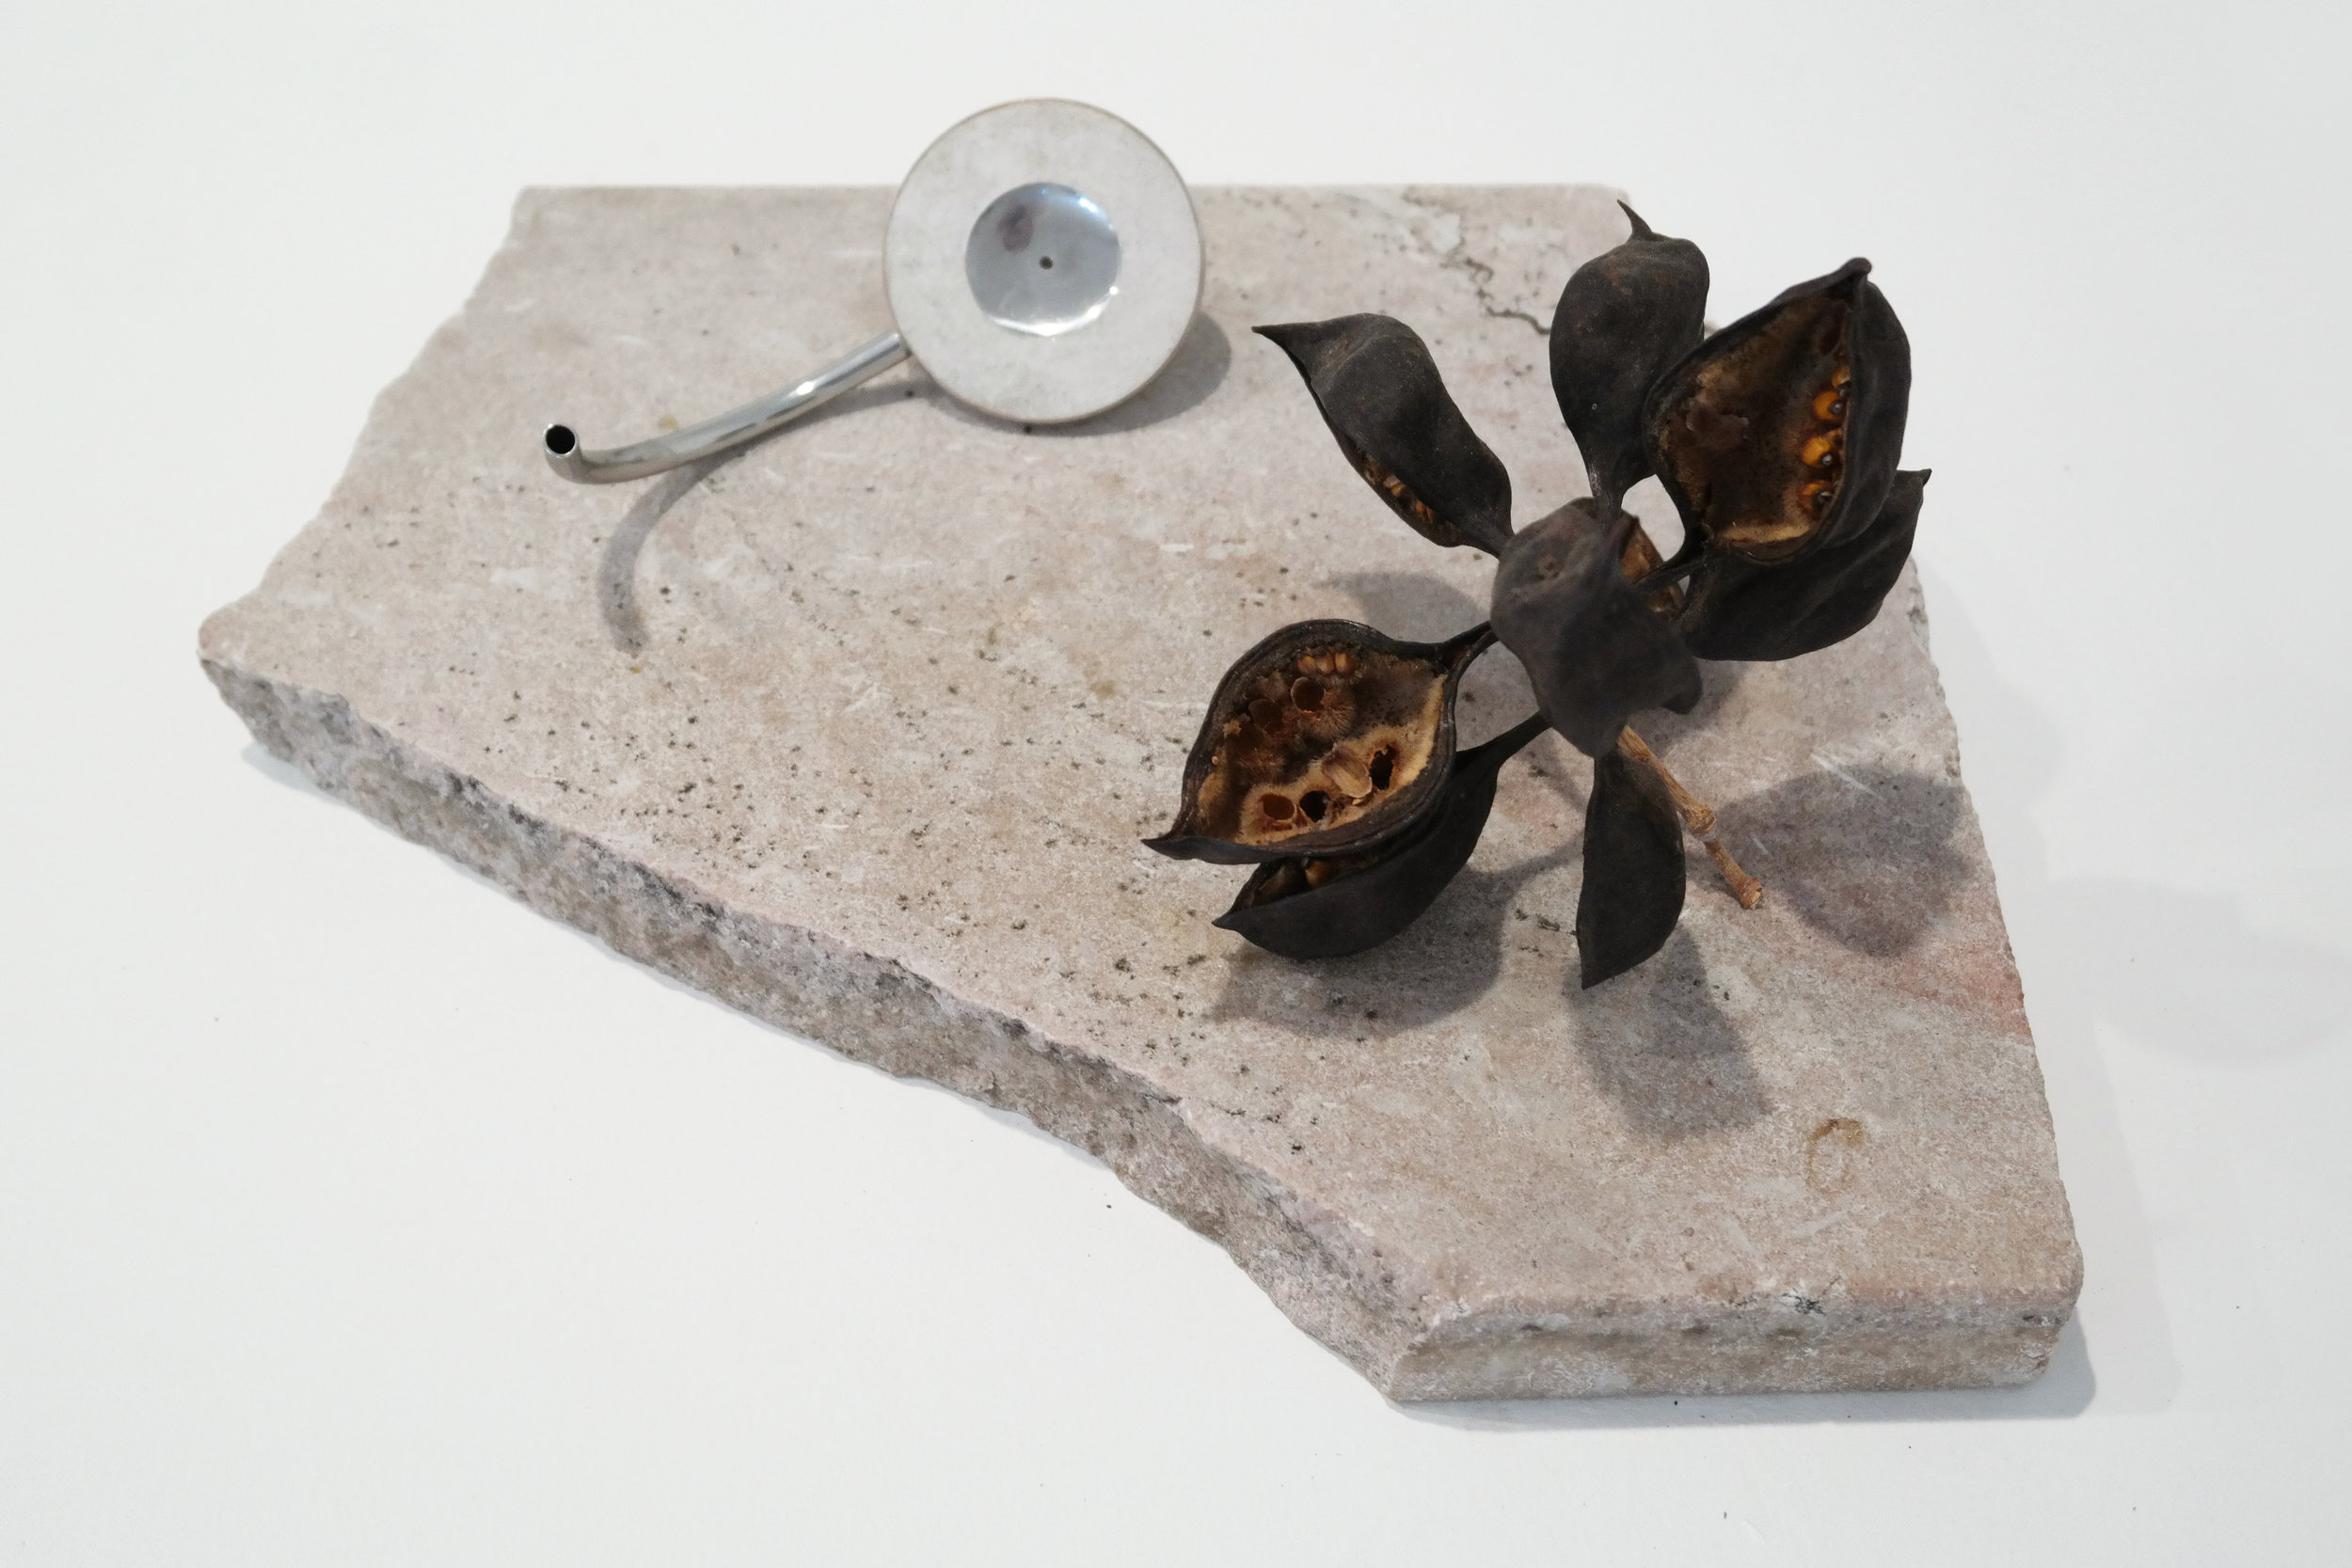 Summoning of the muse Stainless steel, clay, sand, marble, seed capsule, 2017